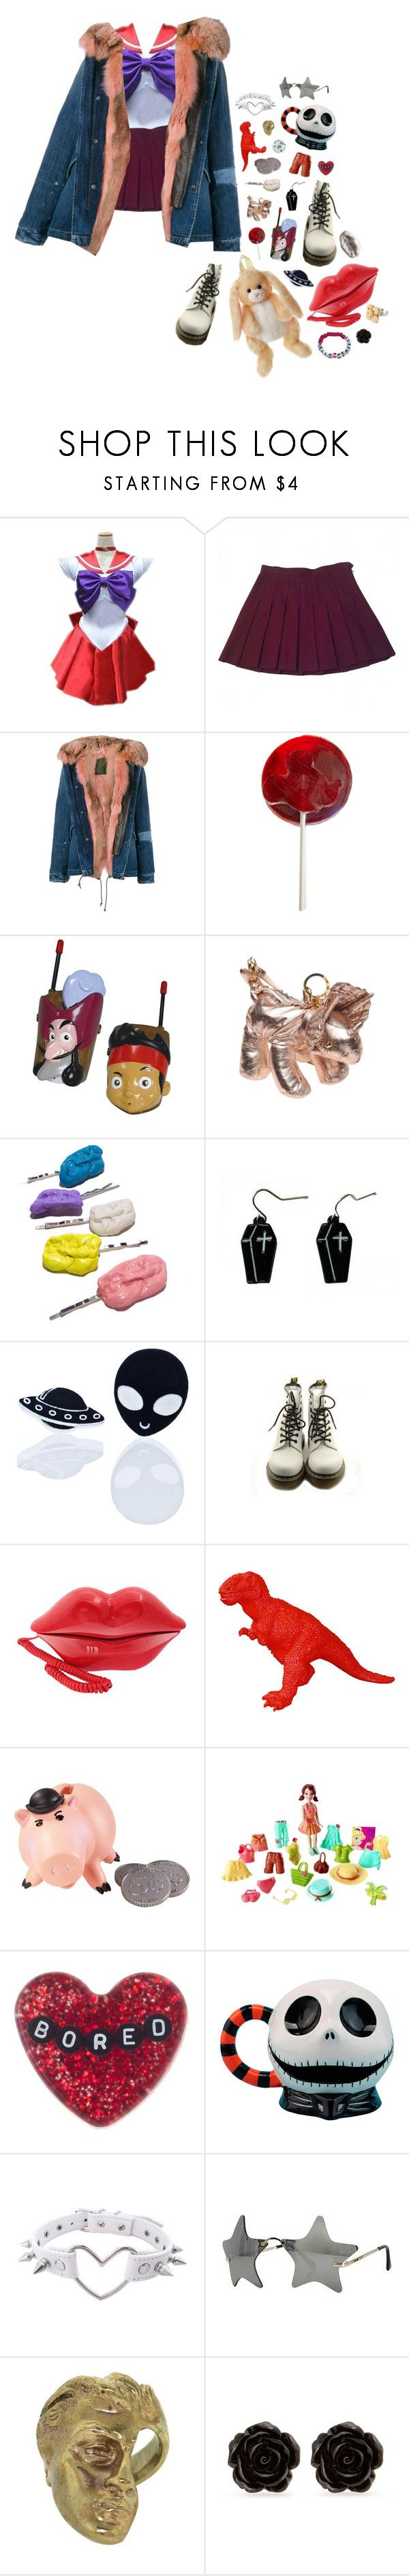 """Pretty soldier"" by queenofrocknroll ❤ liked on Polyvore featuring American Apparel, Mr & Mrs Italy, Disney, Giles, Novelty, Haus of Dizzy, Dr. Martens, Mattel, Yunus & Eliza and Erica Lyons"